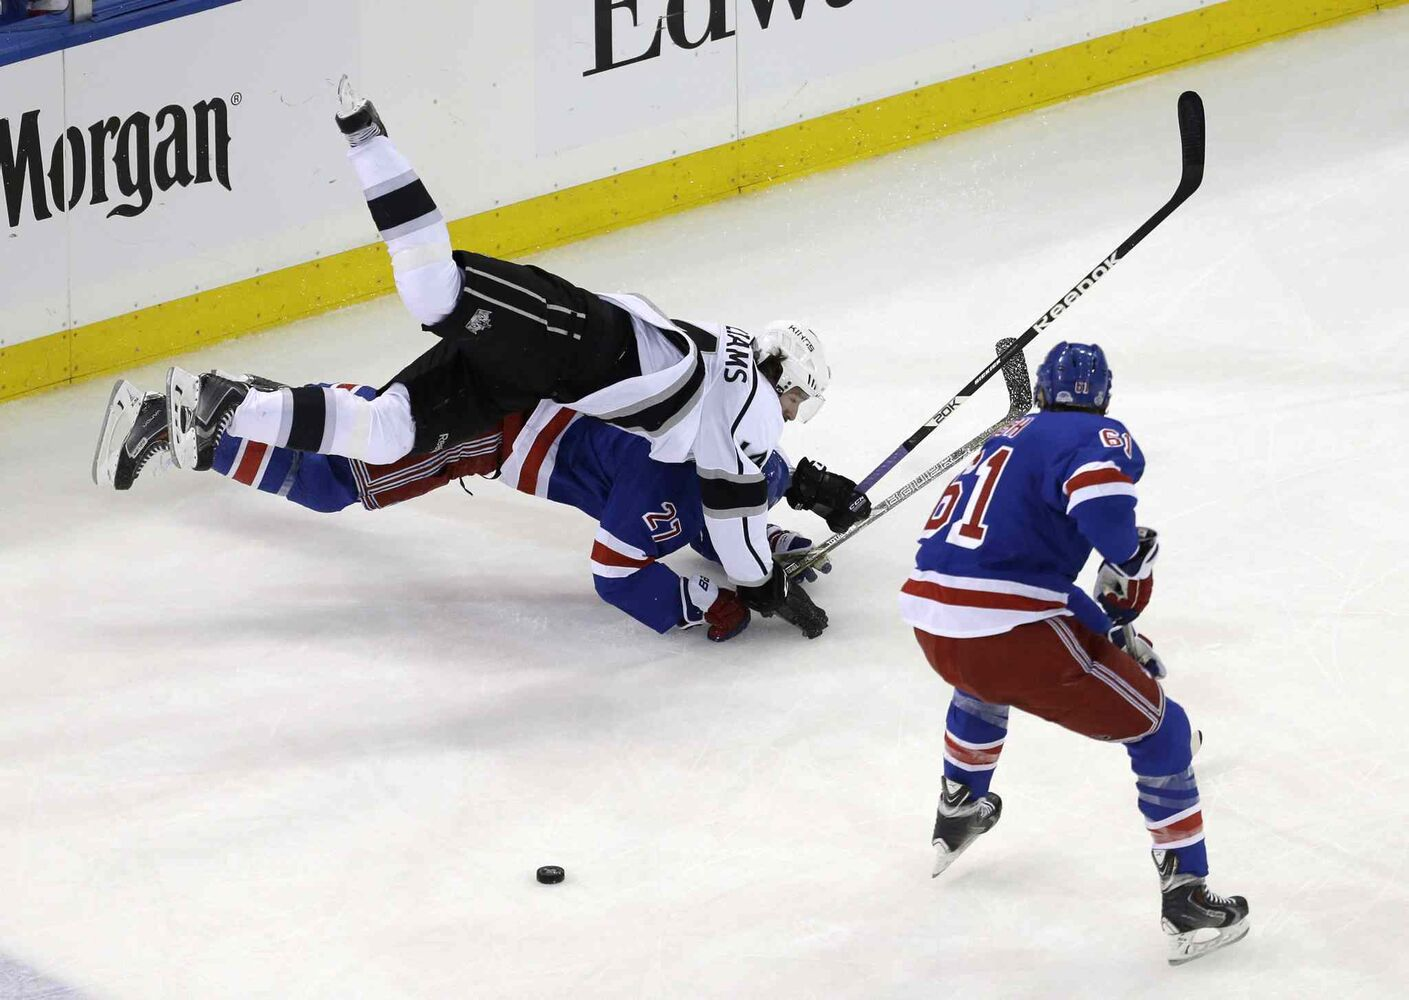 While New York Rangers' left wing Rick Nash (61), right, looks on, Los Angeles Kings' right wing Justin Williams (14), top, gets tangled up with New York Rangers' defenseman Ryan McDonagh (27) in the first period of Wednesday's game.